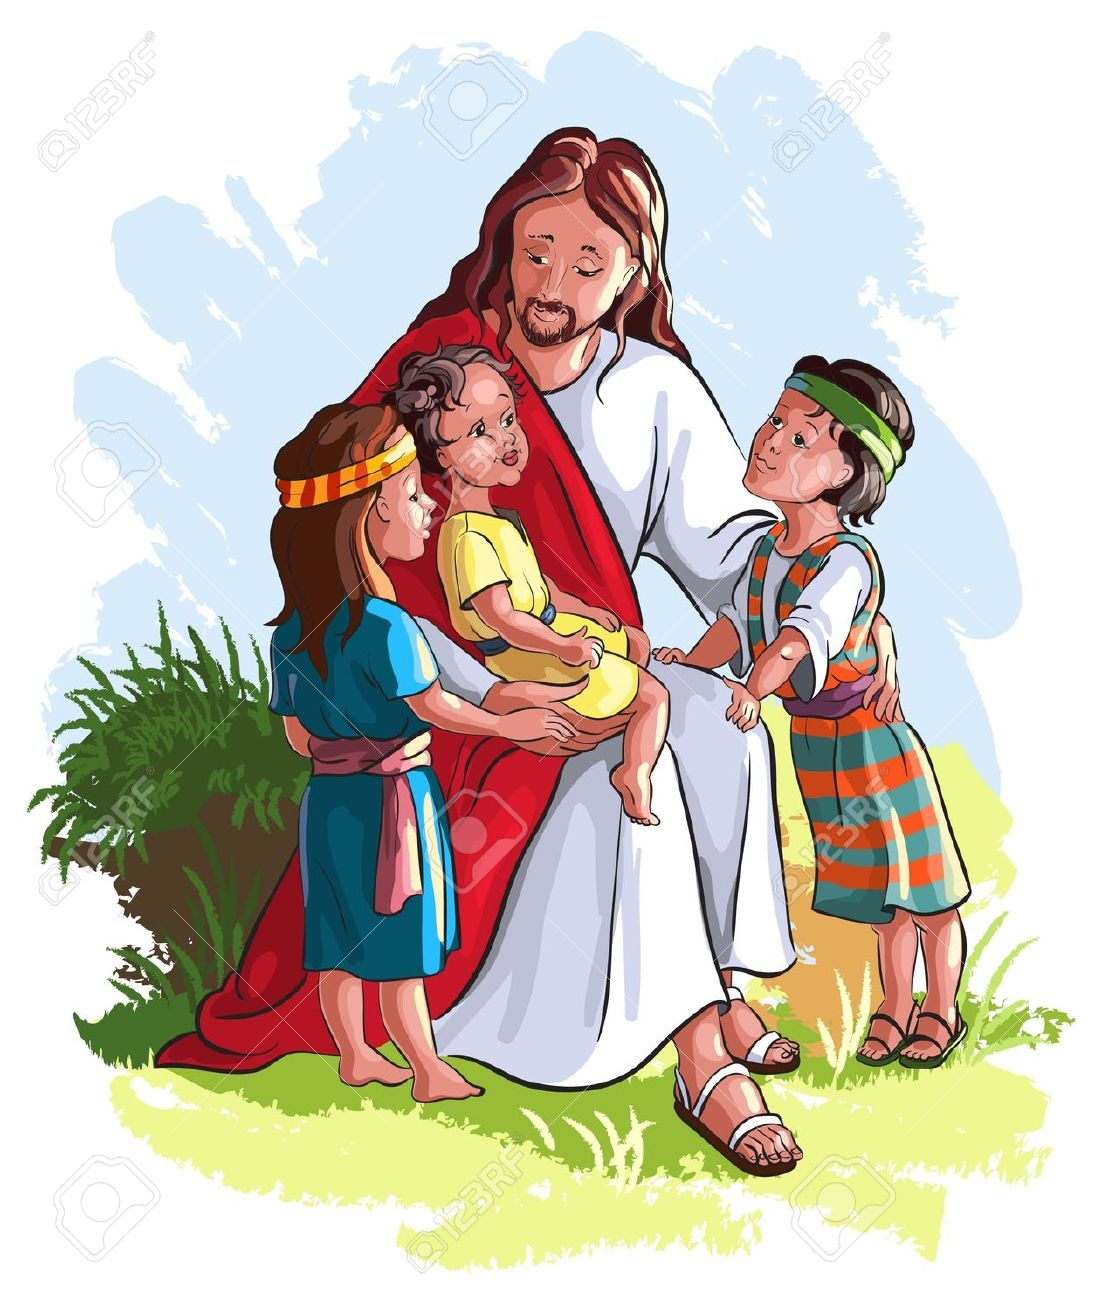 Jesus working as a child clipart.